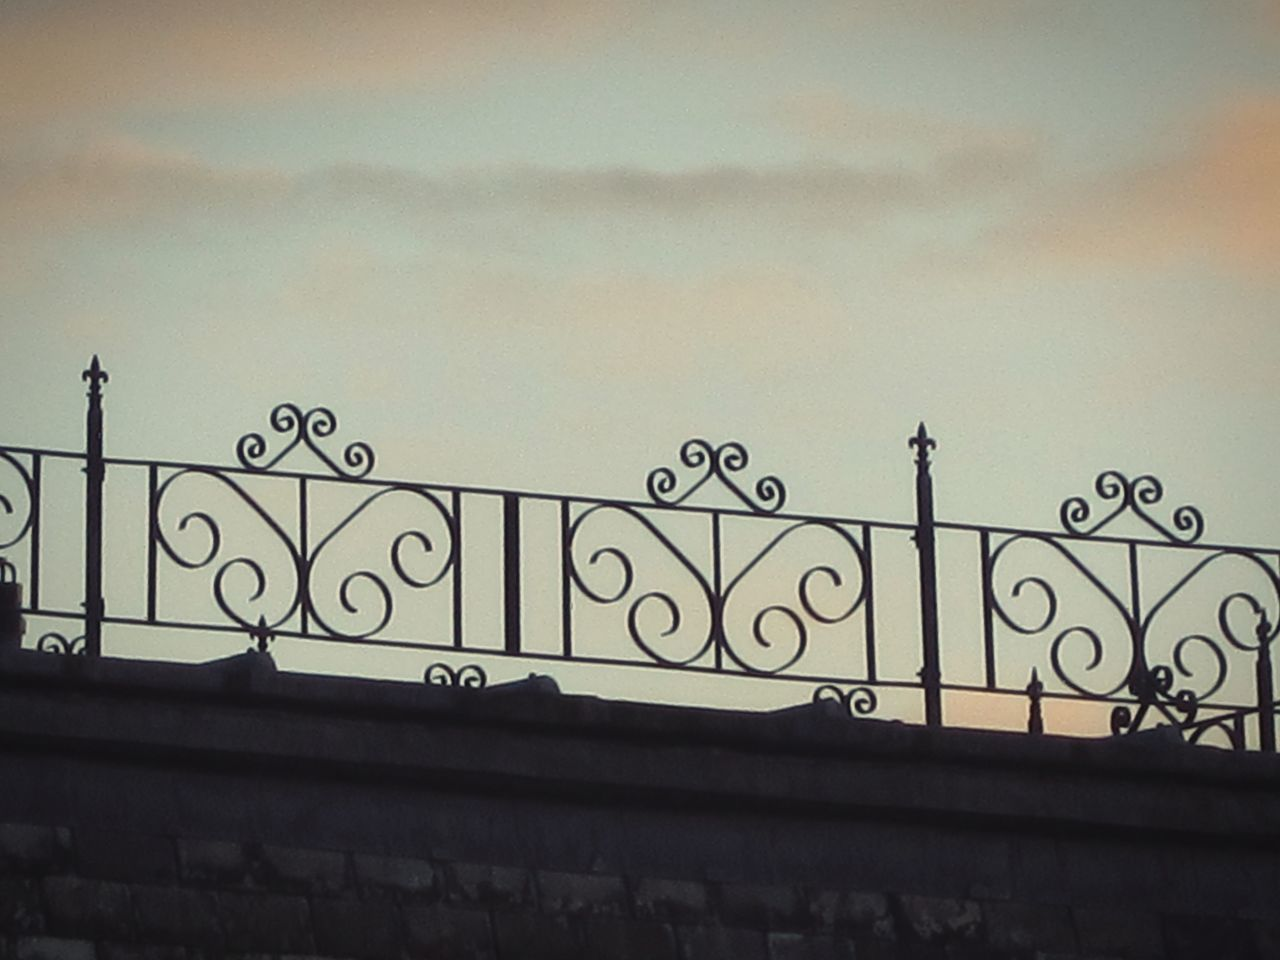 railing, architecture, built structure, building exterior, no people, wrought iron, low angle view, outdoors, sky, day, city, close-up